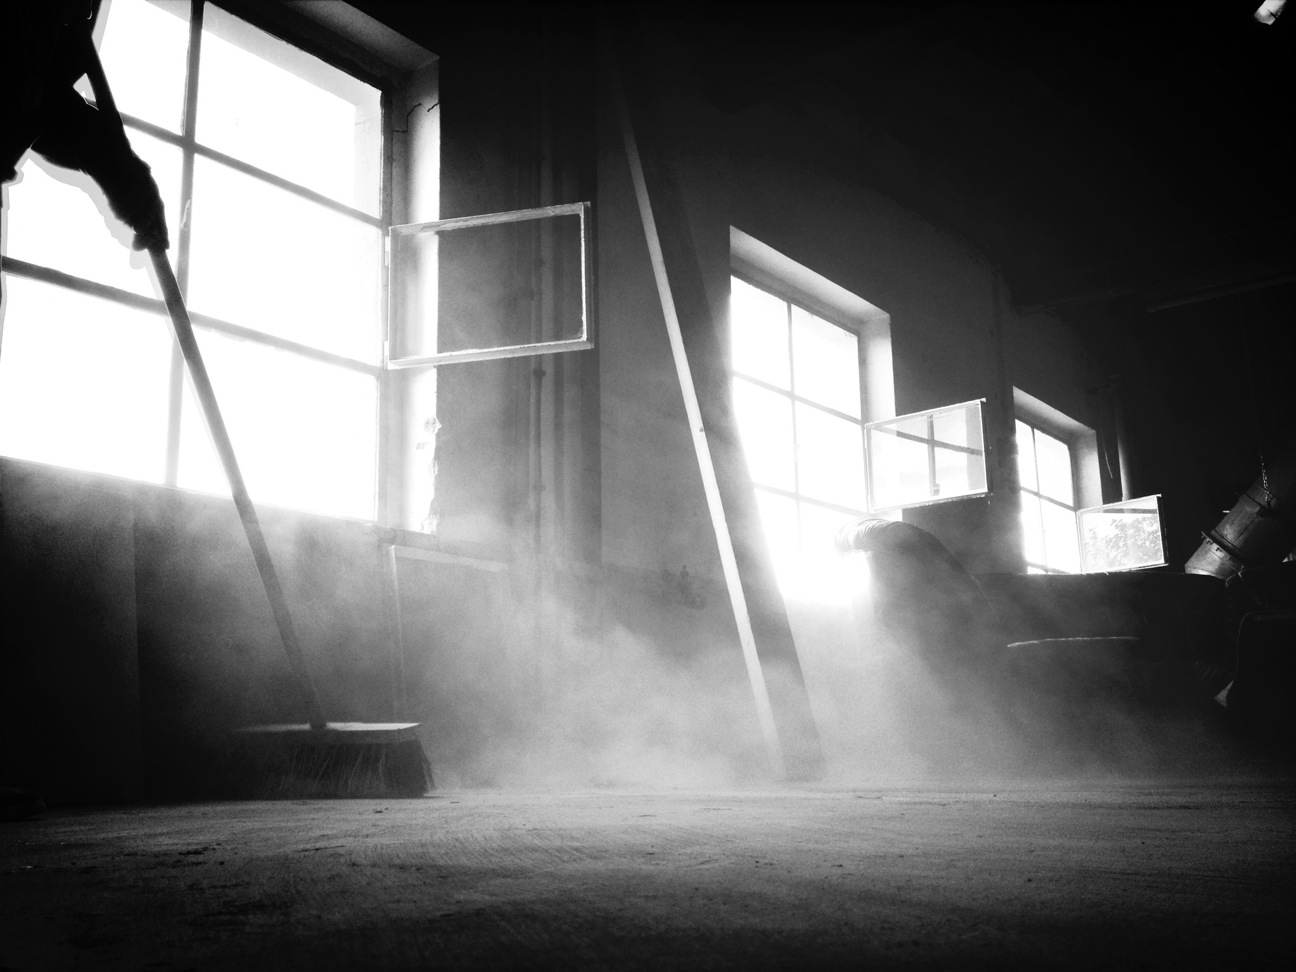 Sweeping dusty room